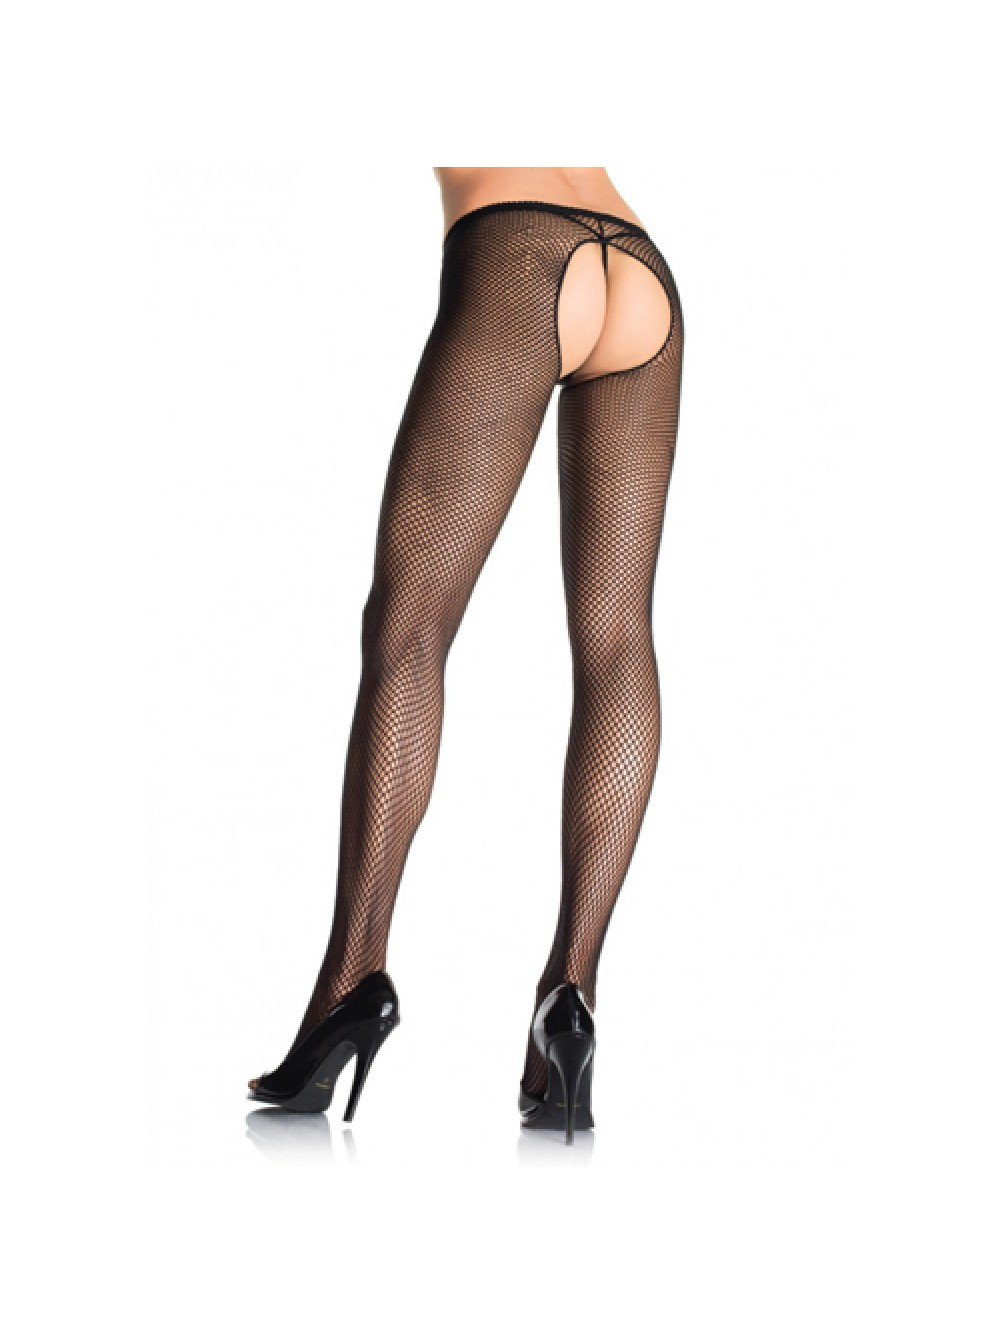 COLLANT A RETE APERTO PLUS SIZE  CROTCHLESS HOSIERY BLACK